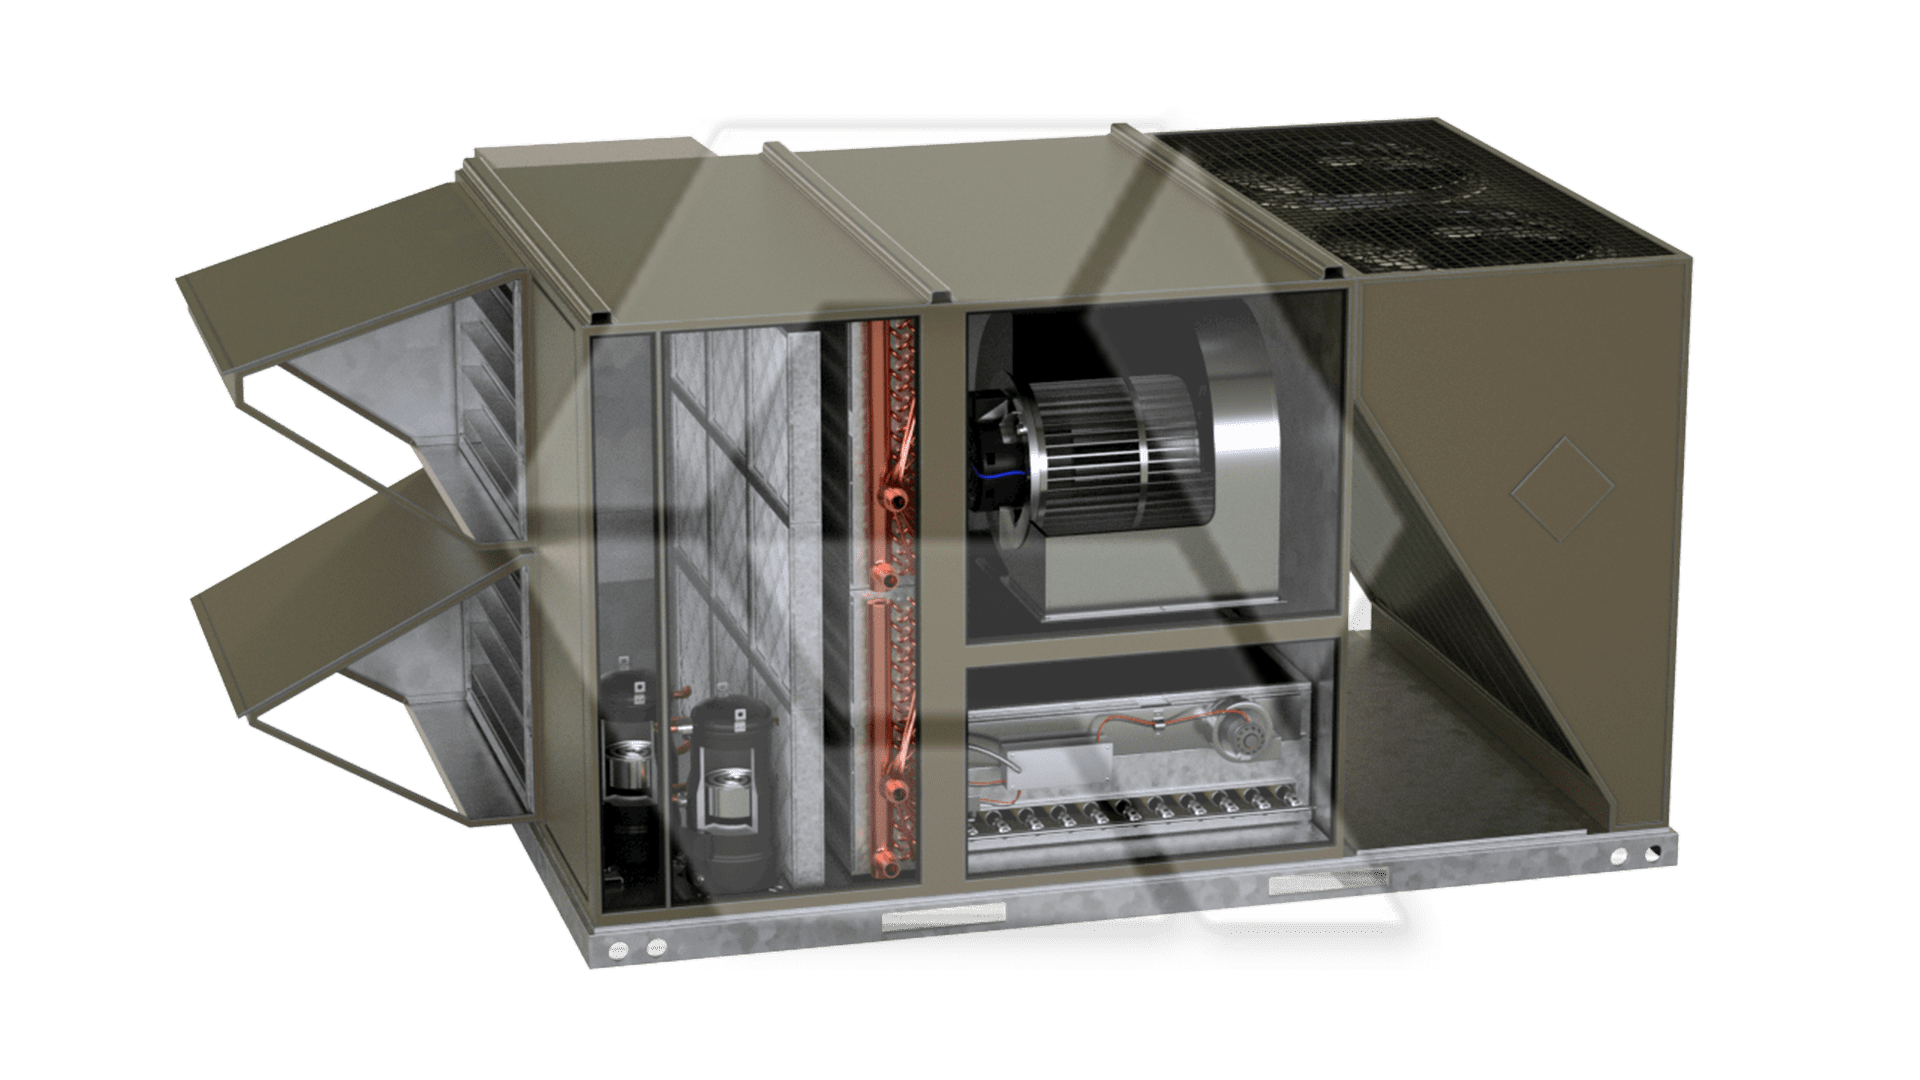 Johnson Control R-410A RTU with animations for compressors, cooling coil, dampers, fans, filter, and heating coil. (2 fans)